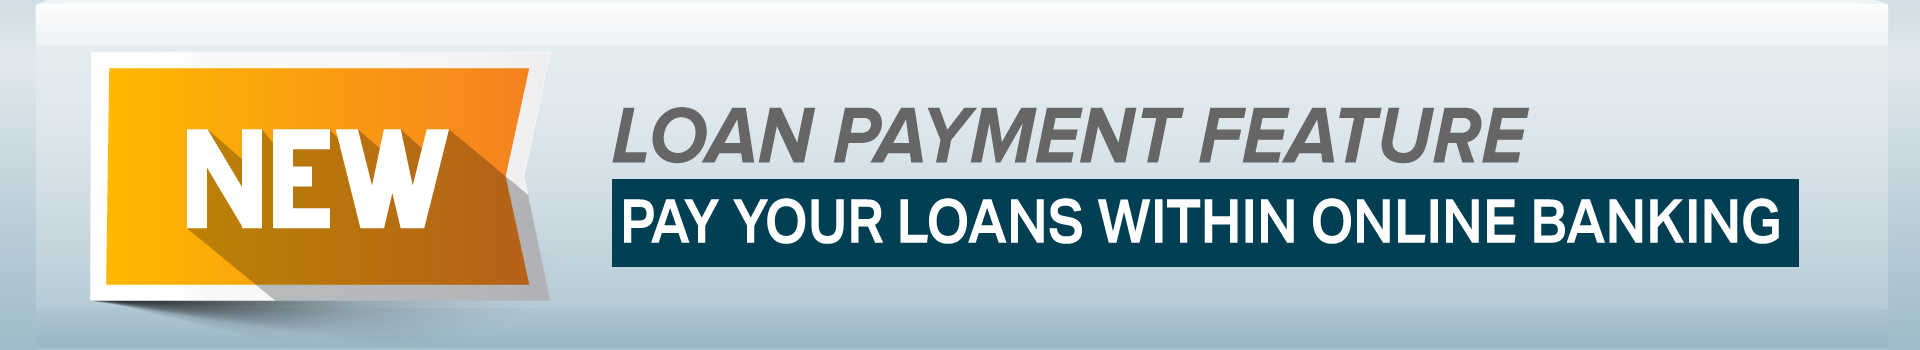 "Blue banner with text reading ""NEW loan payment feature. Pay your loans within online banking."""